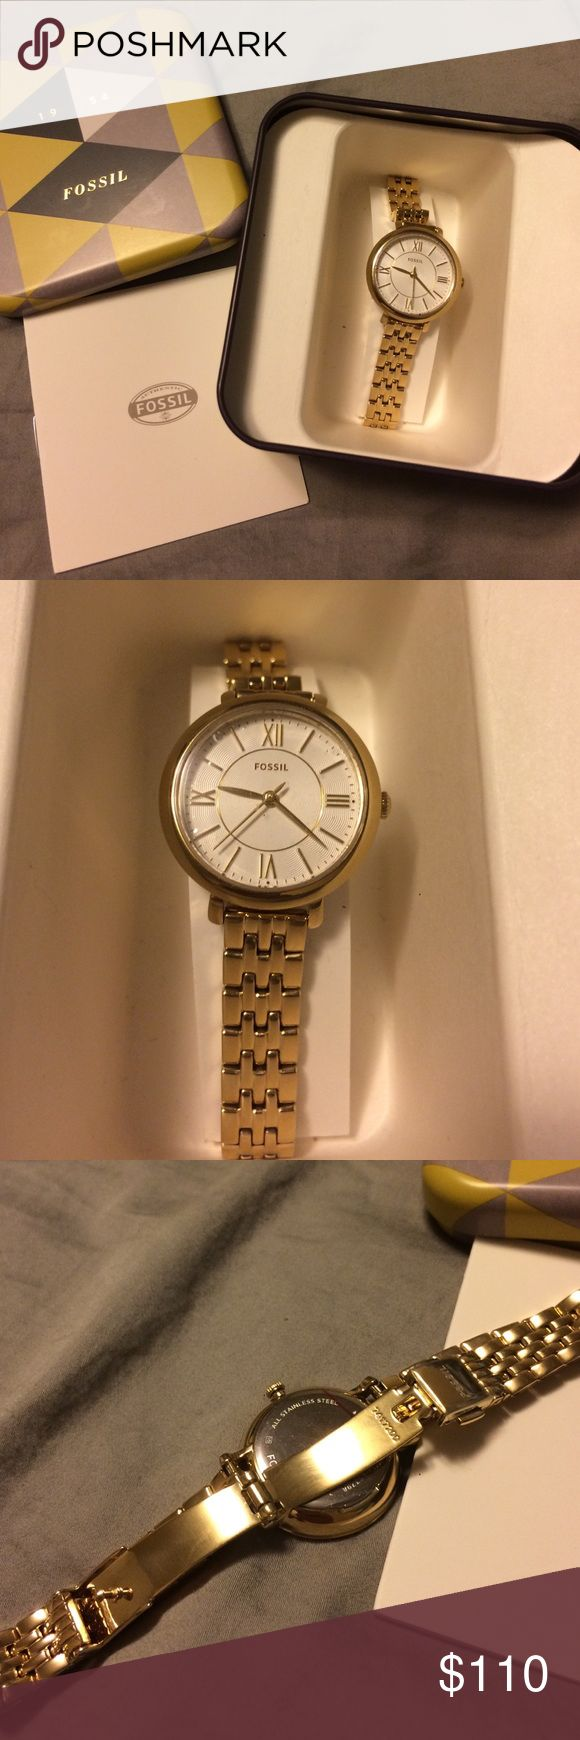 Gold Fossil Watch -Jacqueline Collection- NWOT Women's gold tone stainless steel Fossil watch-- NWOT and never been worn! Jacqueline collection- 26 mm. Water resistant 3 ATM. The watch face still has the sticker on and battery is fully functional. Comes with original box. Fossil Accessories Watches